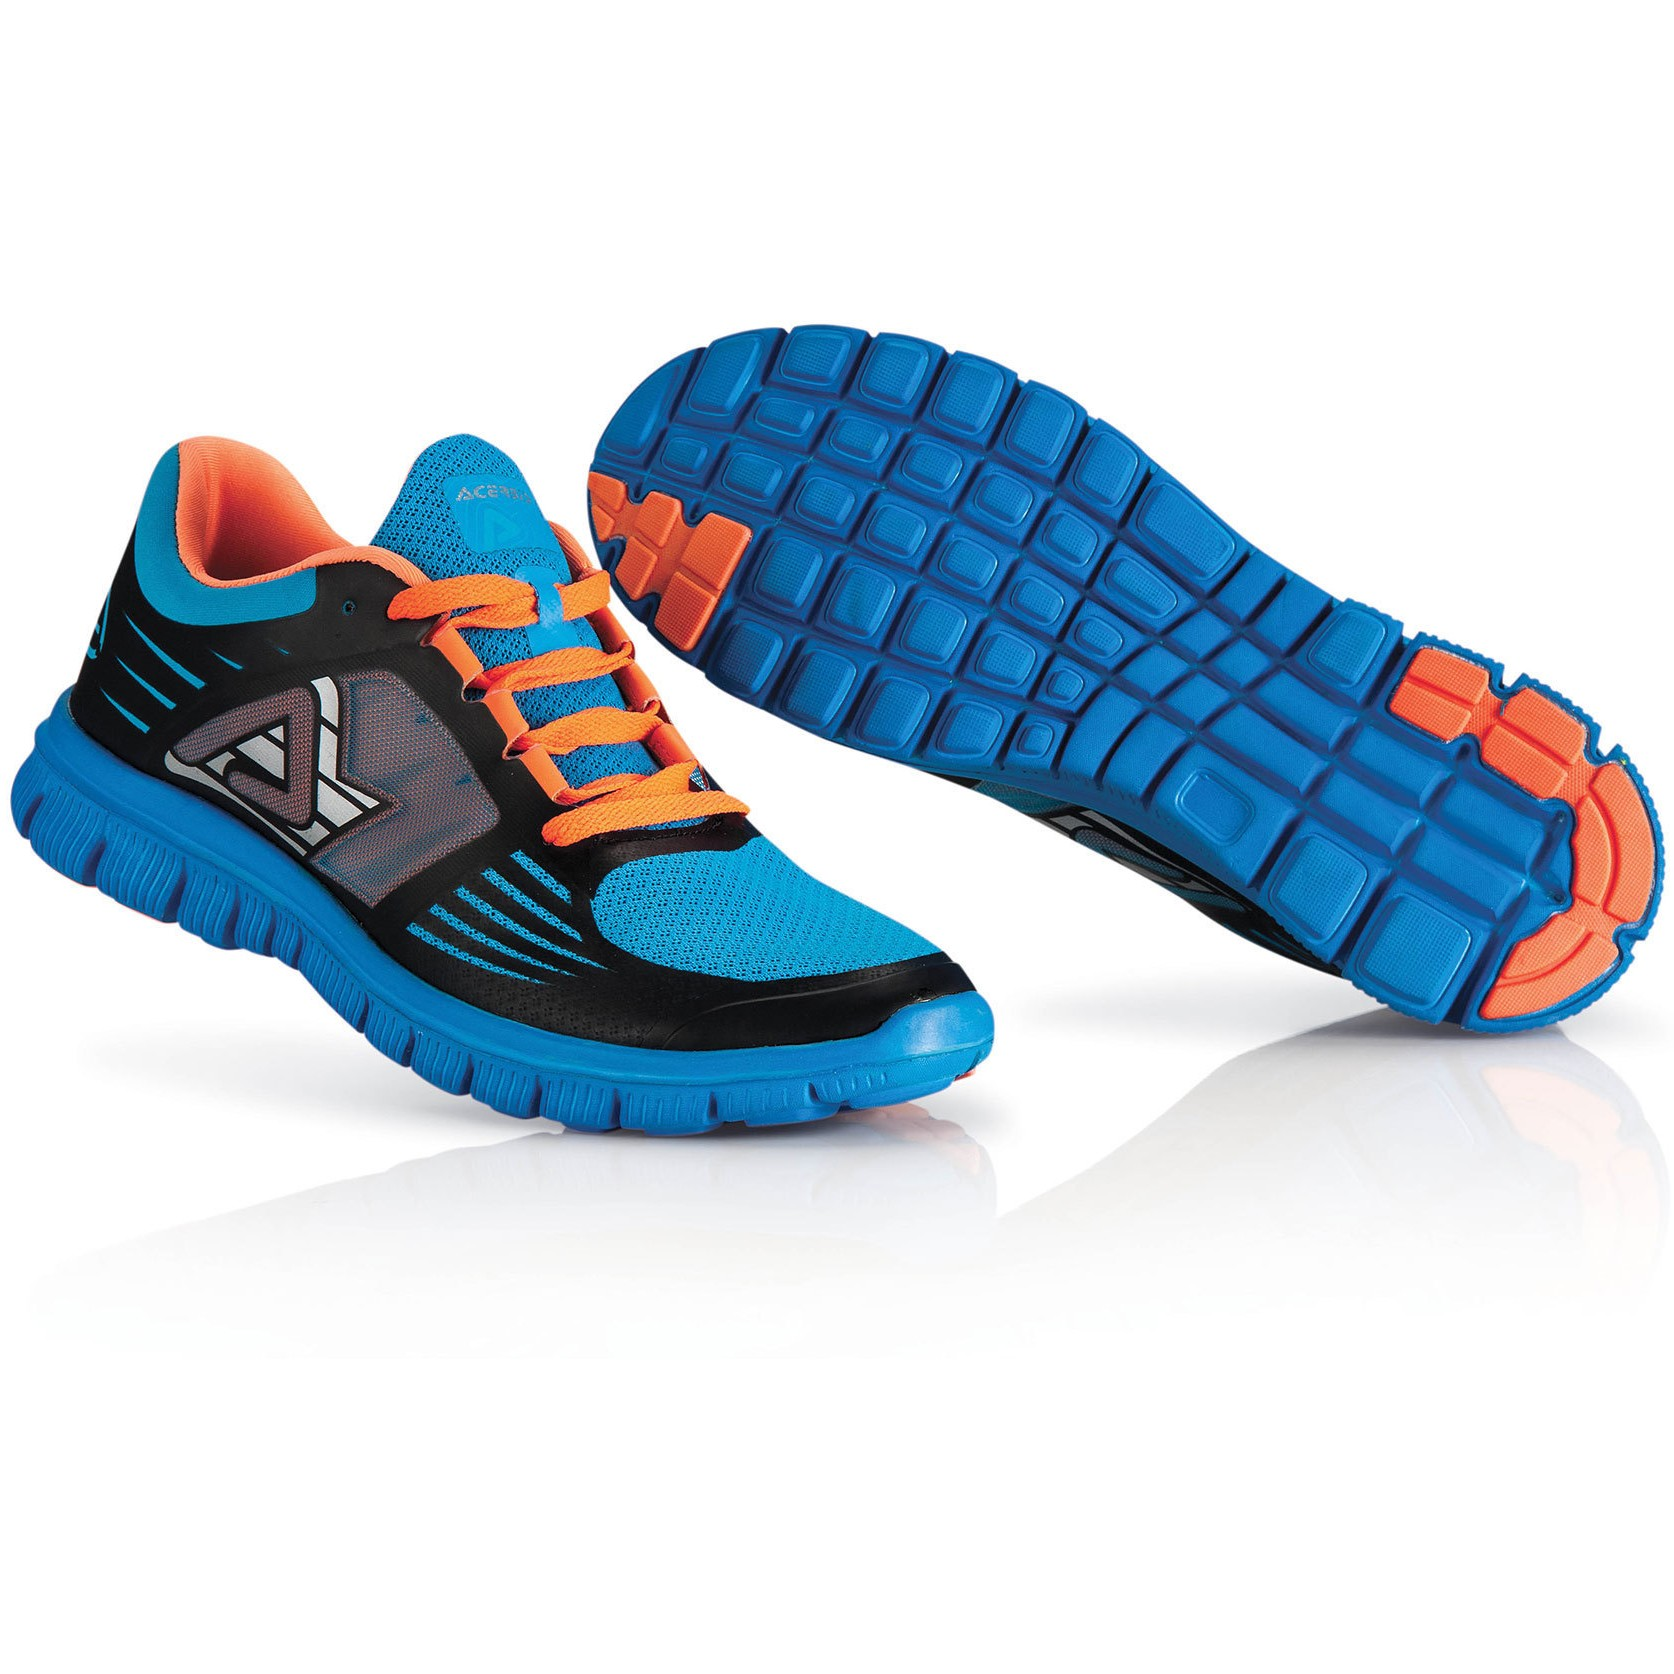 basquettes running ou marche ACERBIS BLEU ORANGE VIF P42 uniquem